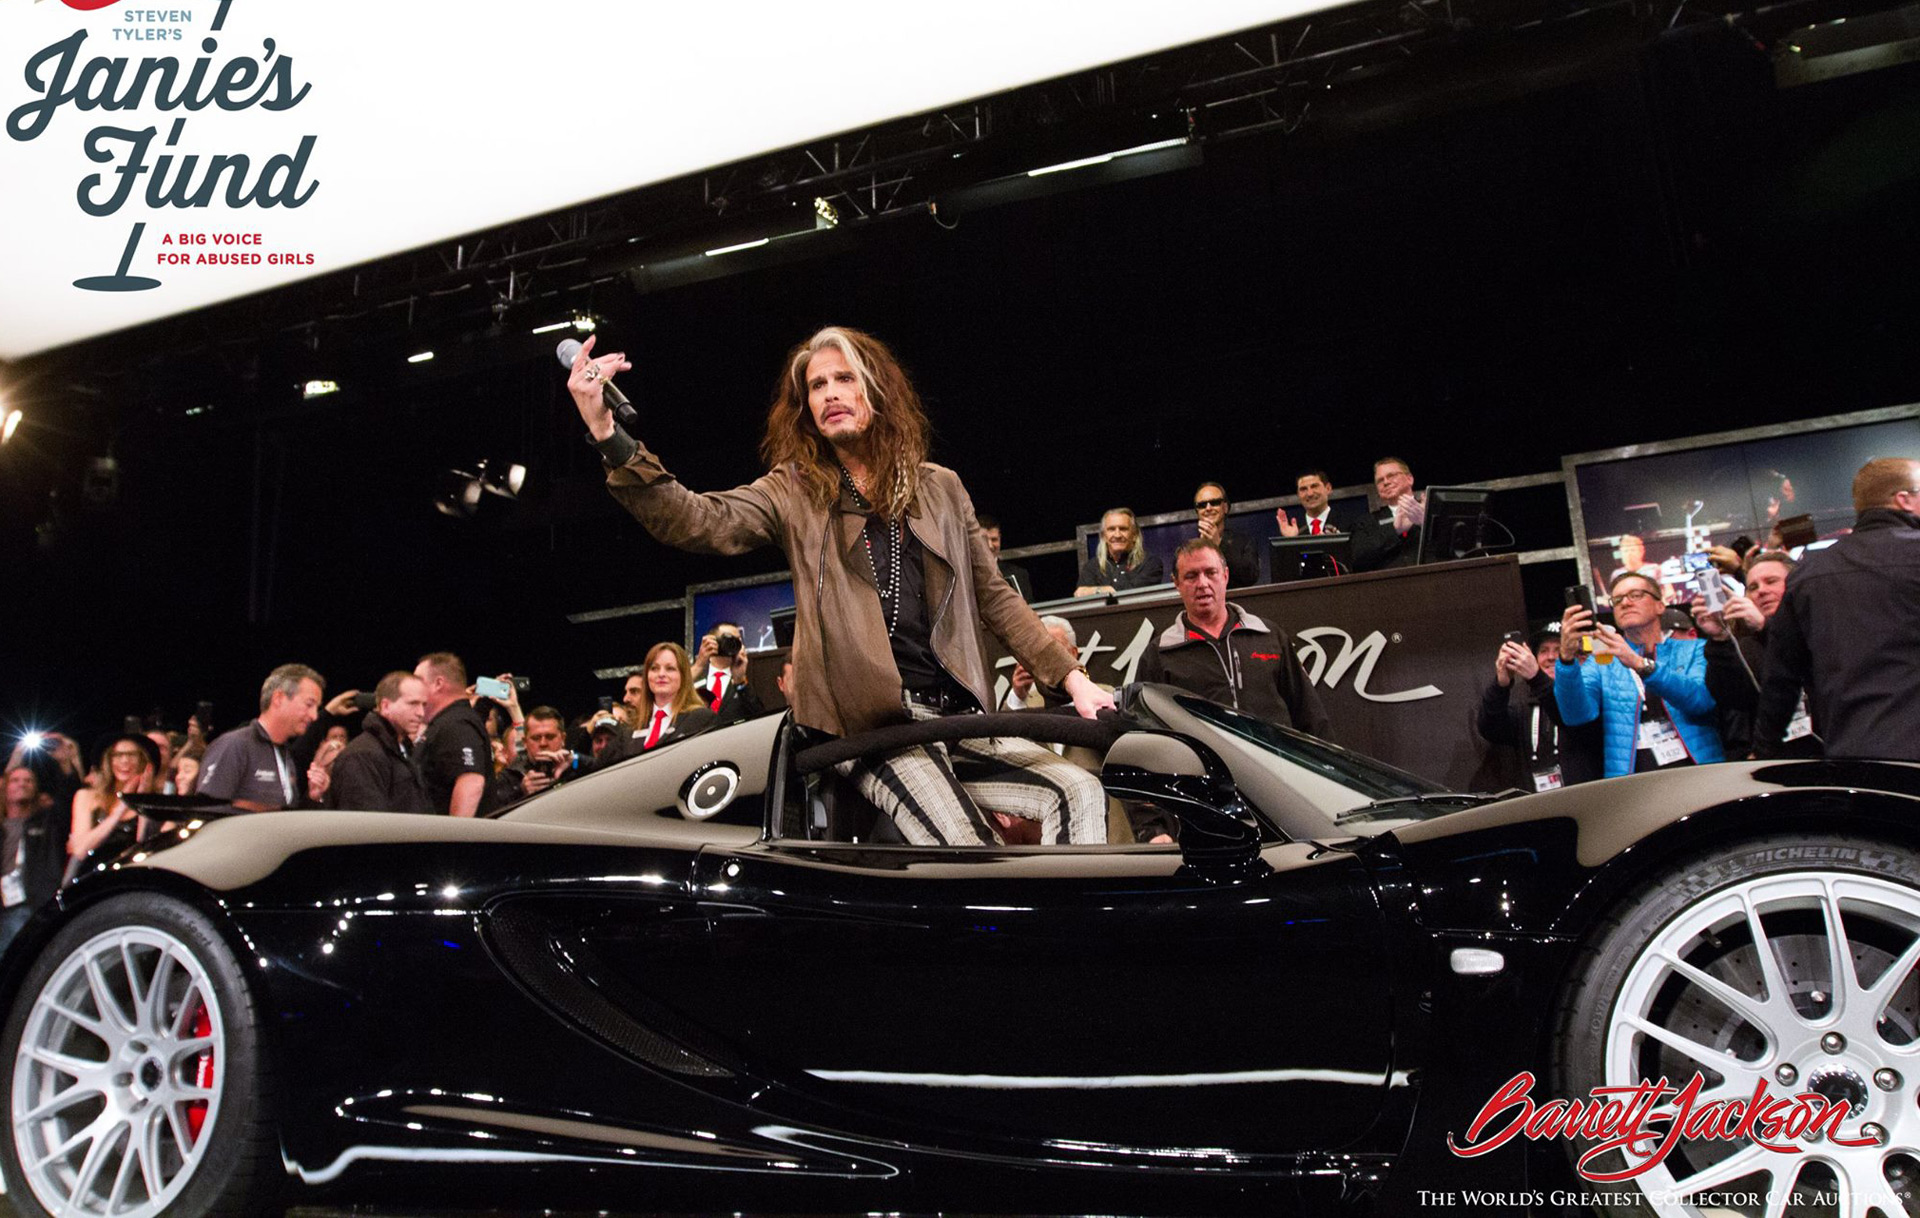 steven tyler s hennessey venom gt spyder raises 800k for charity. Black Bedroom Furniture Sets. Home Design Ideas